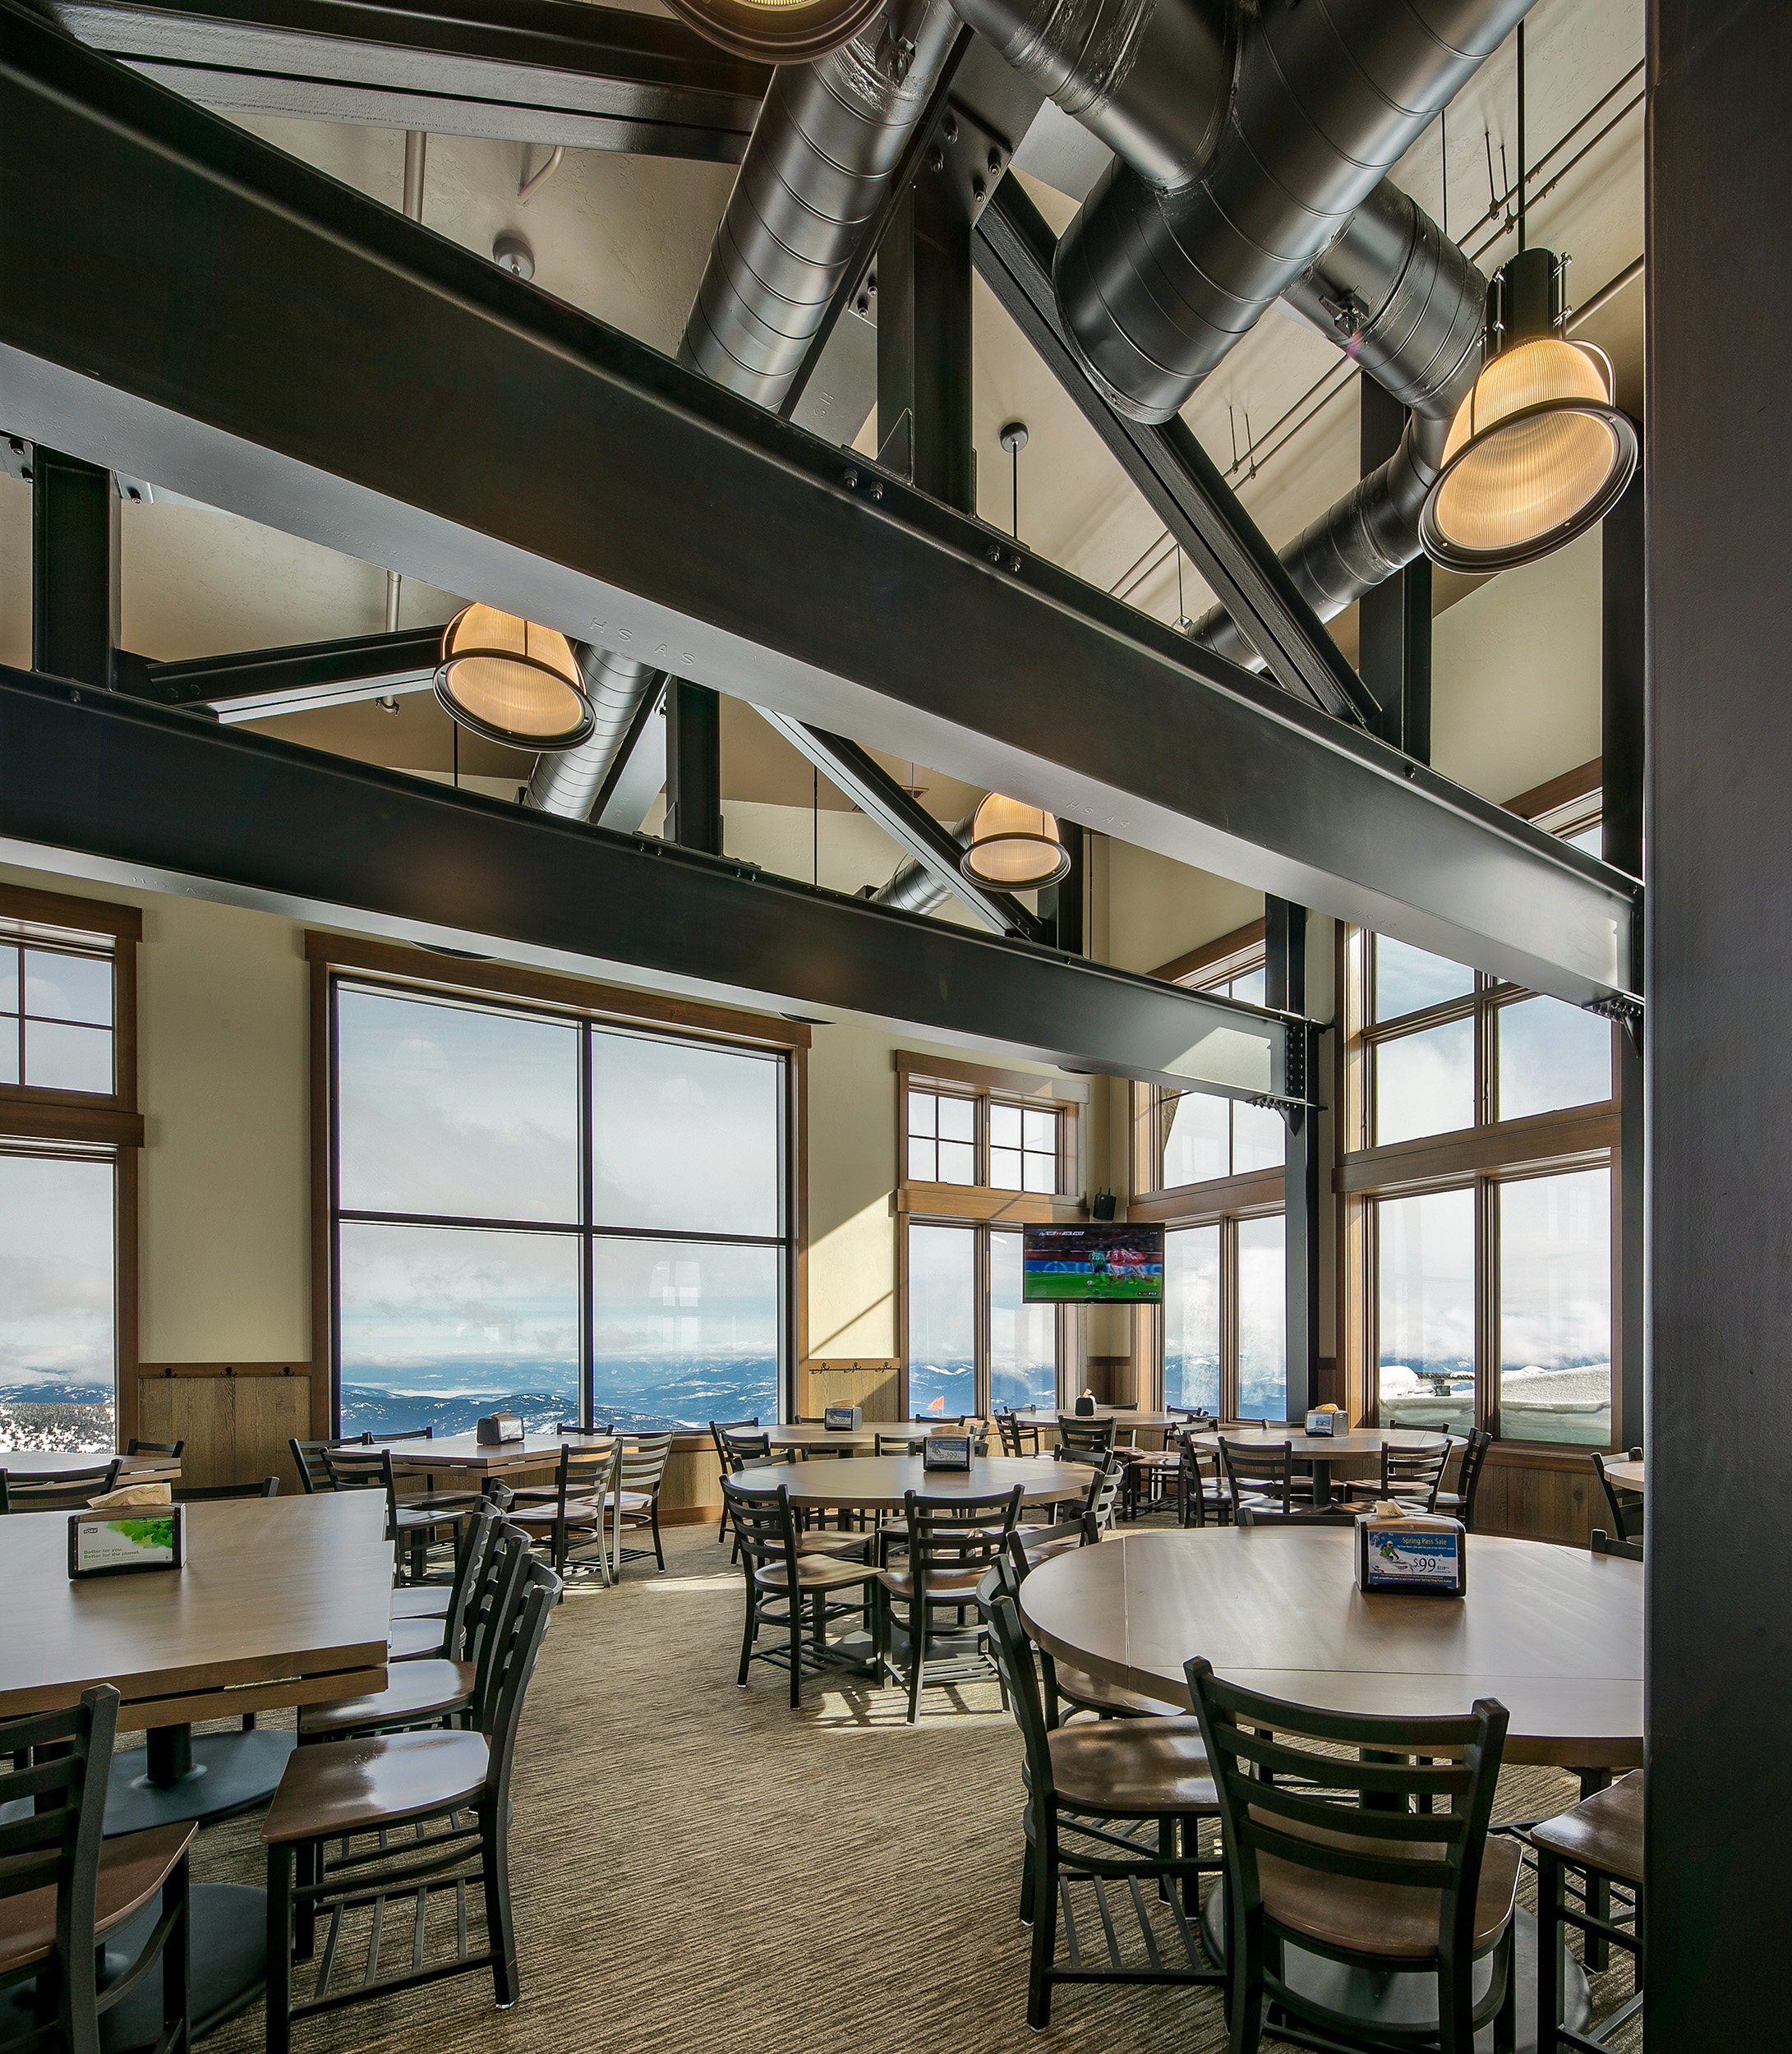 Skyhouse-interior-steel-beams-Schweitzer-Lodge-View-Lodge-2.jpg